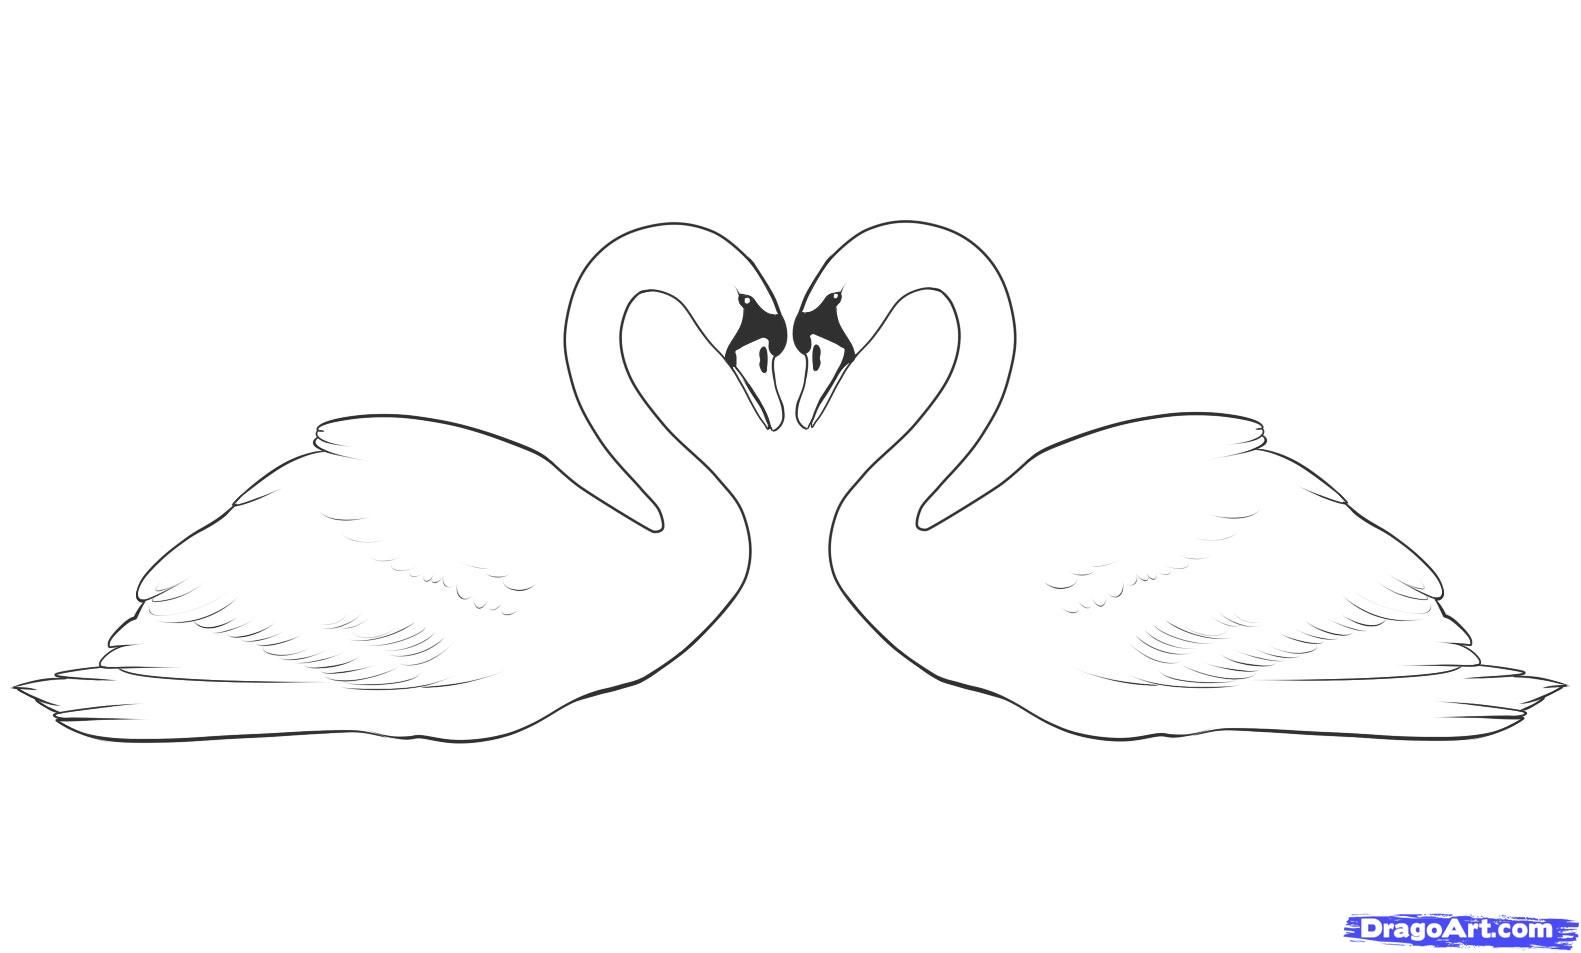 How to draw two swans